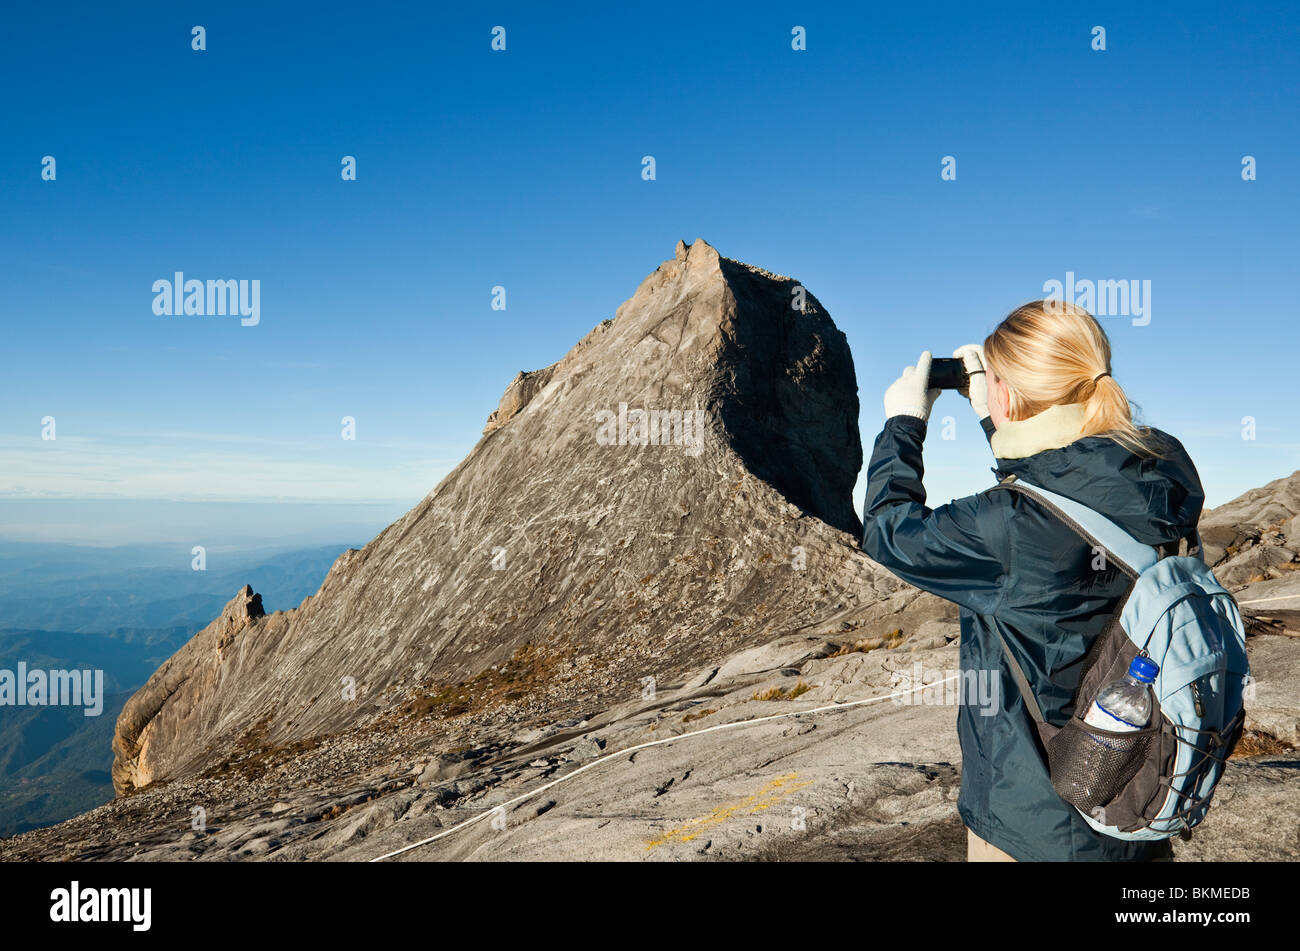 A climber photographs the scenery at the summit of Mt Kinabalu. Kinabalu National Park, Sabah, Borneo, Malaysia. - Stock Image